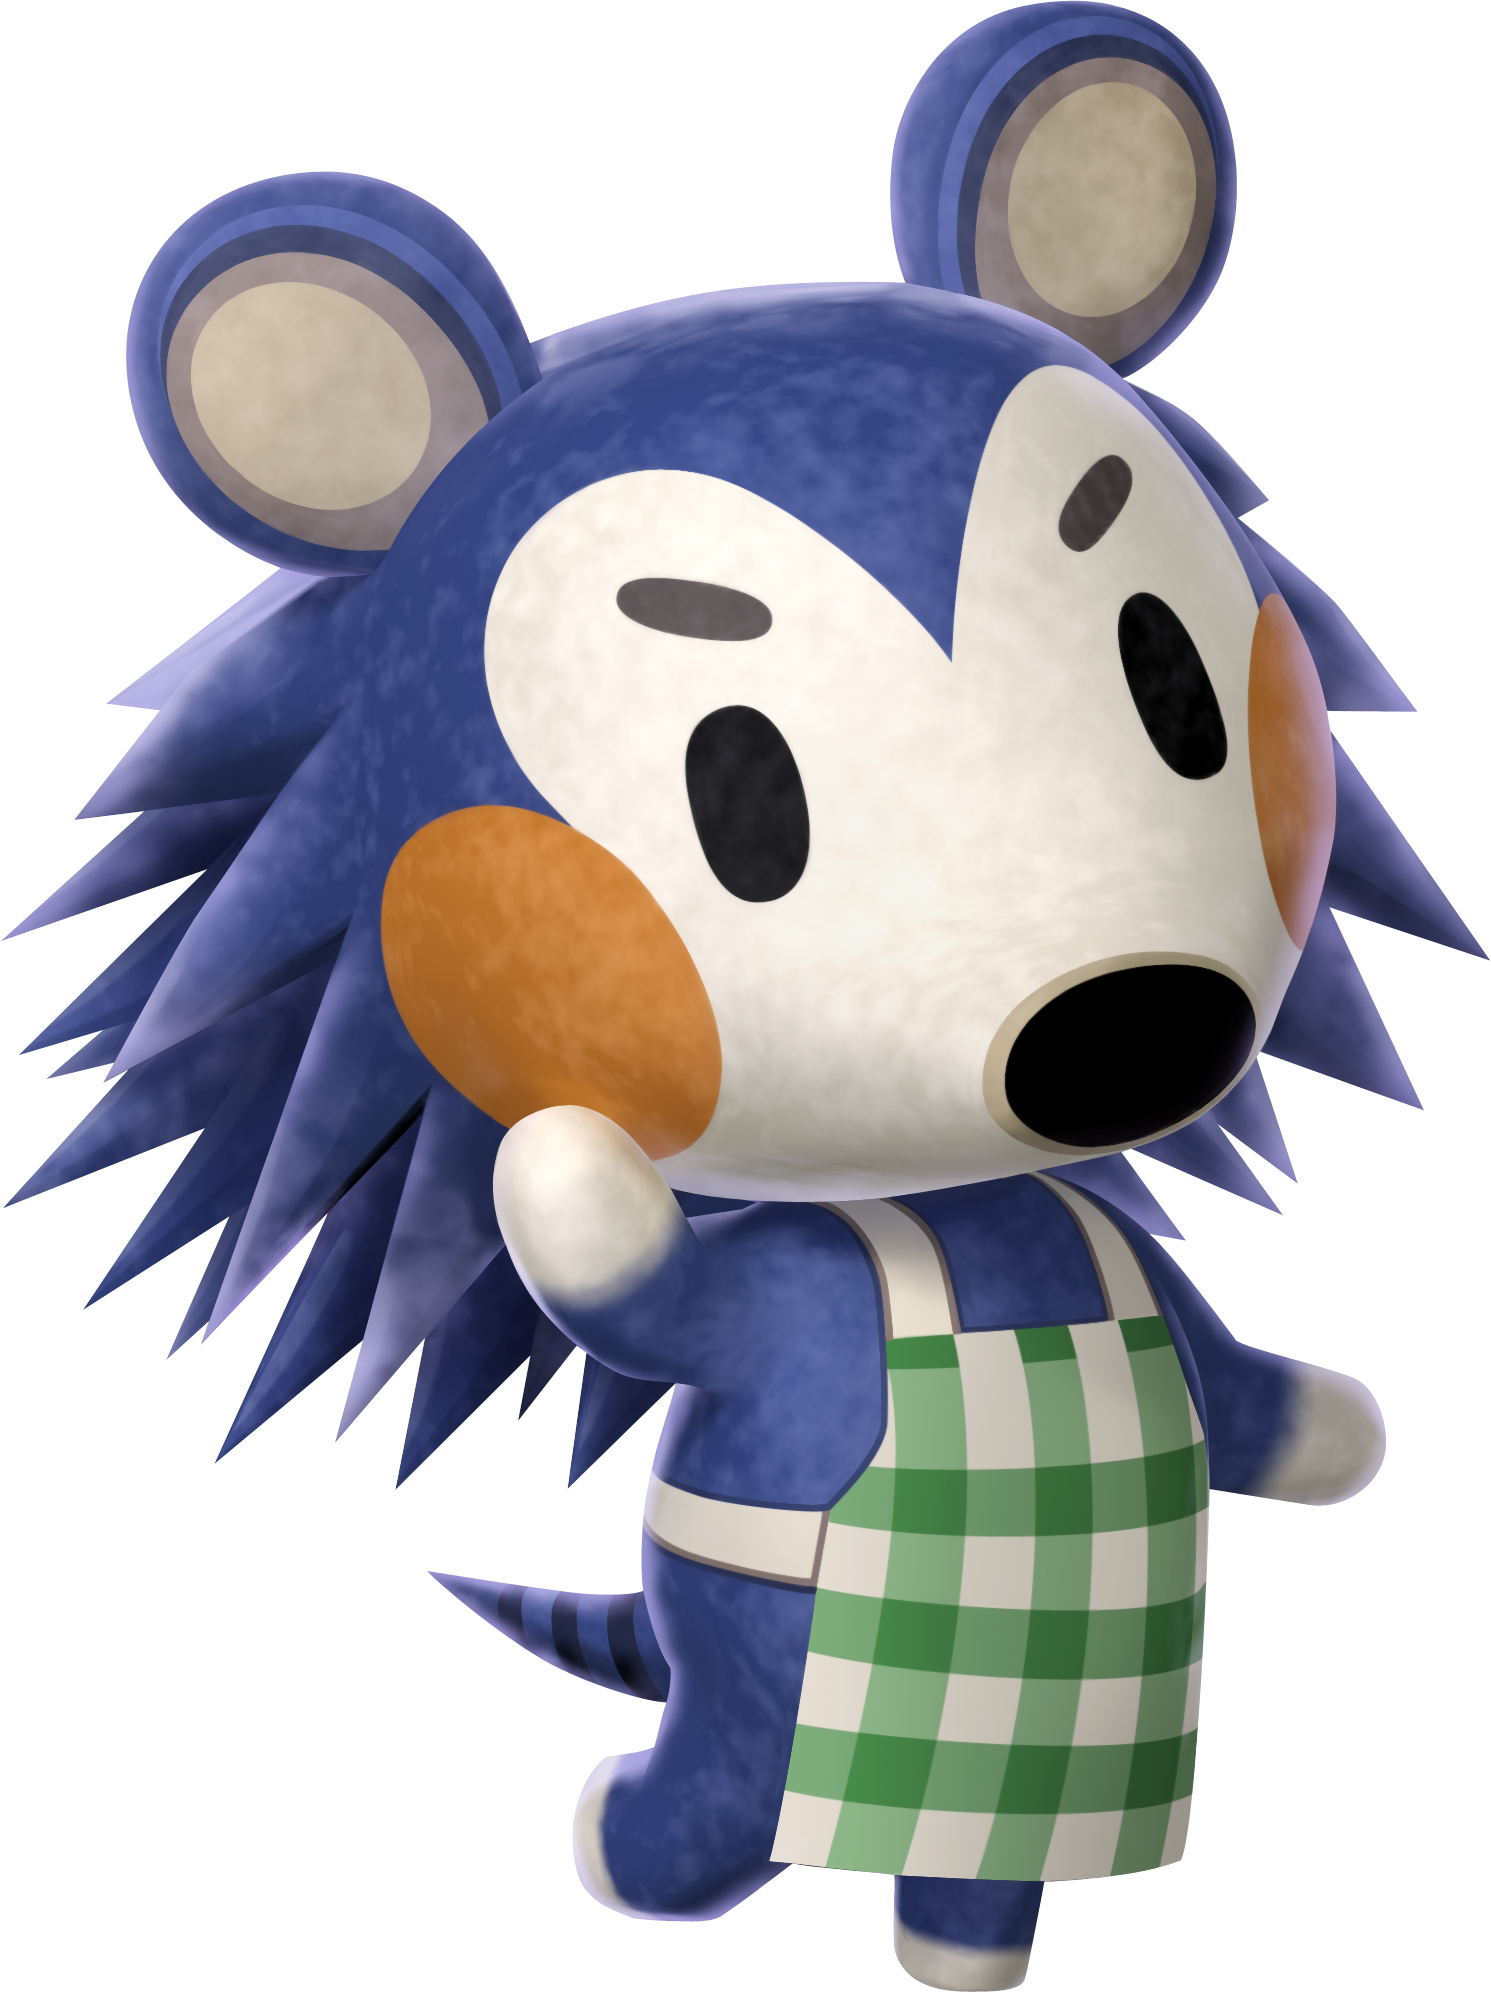 Animal crossing stitches png. Mabel wiki fandom powered